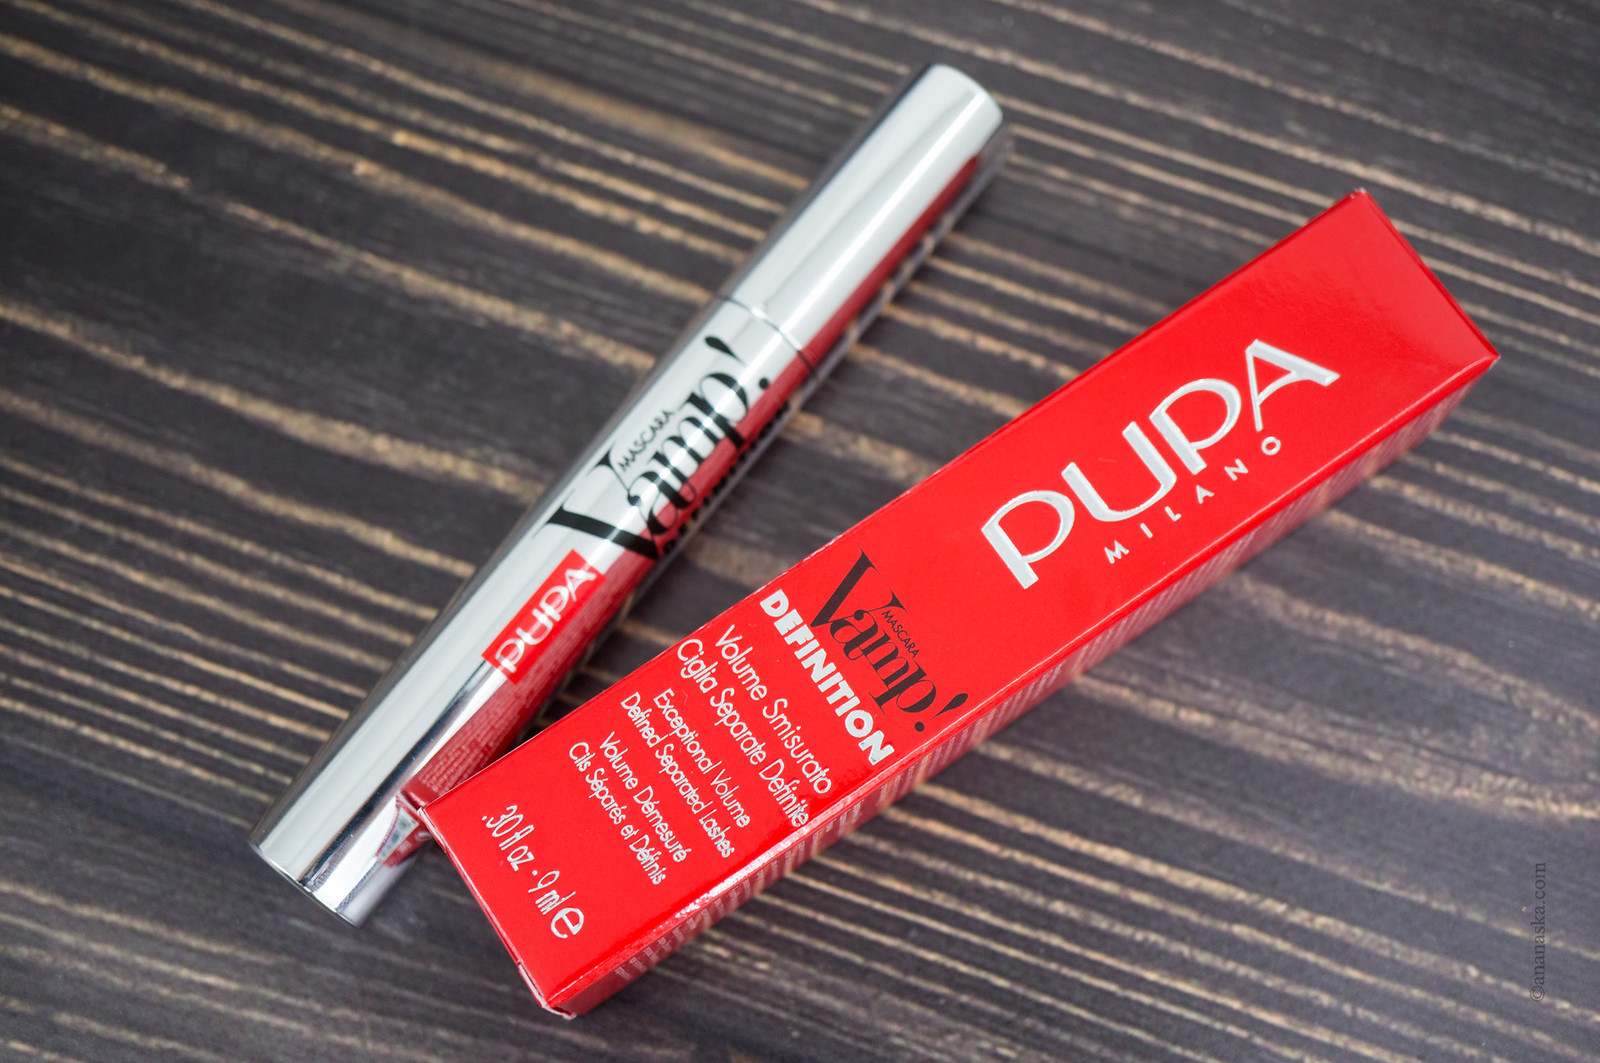 PUPA Vamp! Mascara Definition